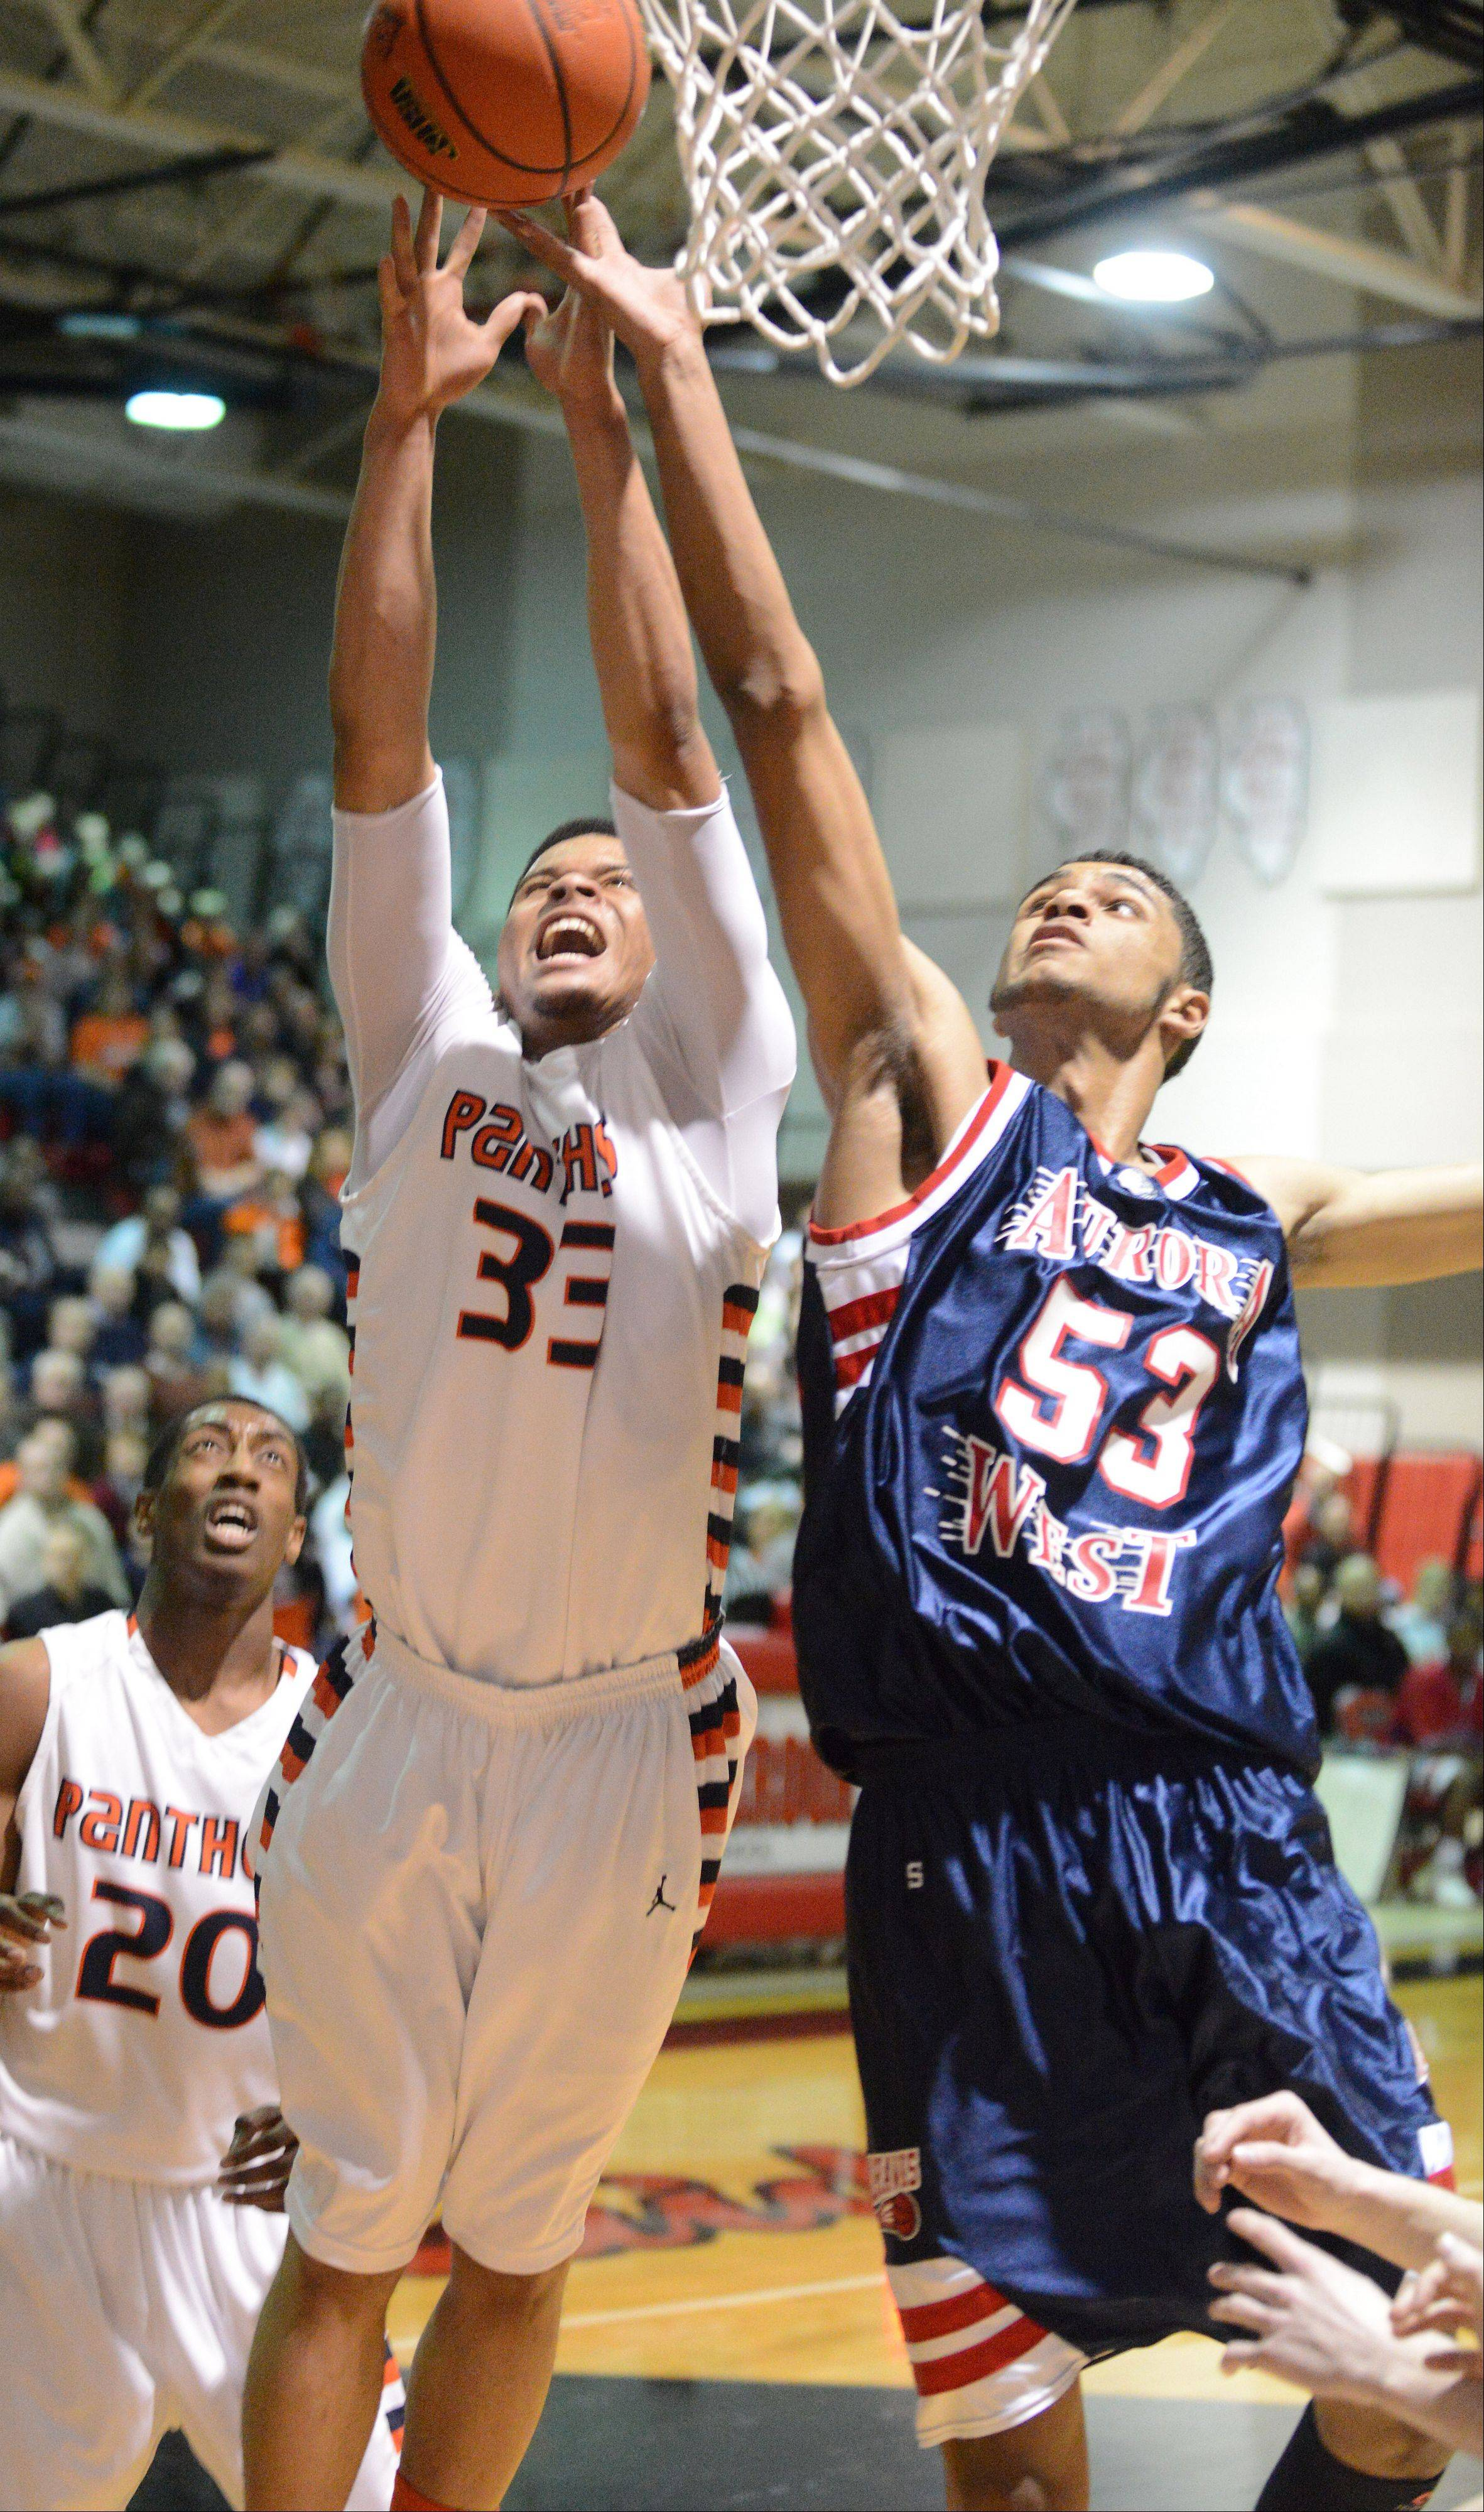 Darion Reddick of Oswego,left, and Joshua Mcauley of West Aurora go for a rebound.